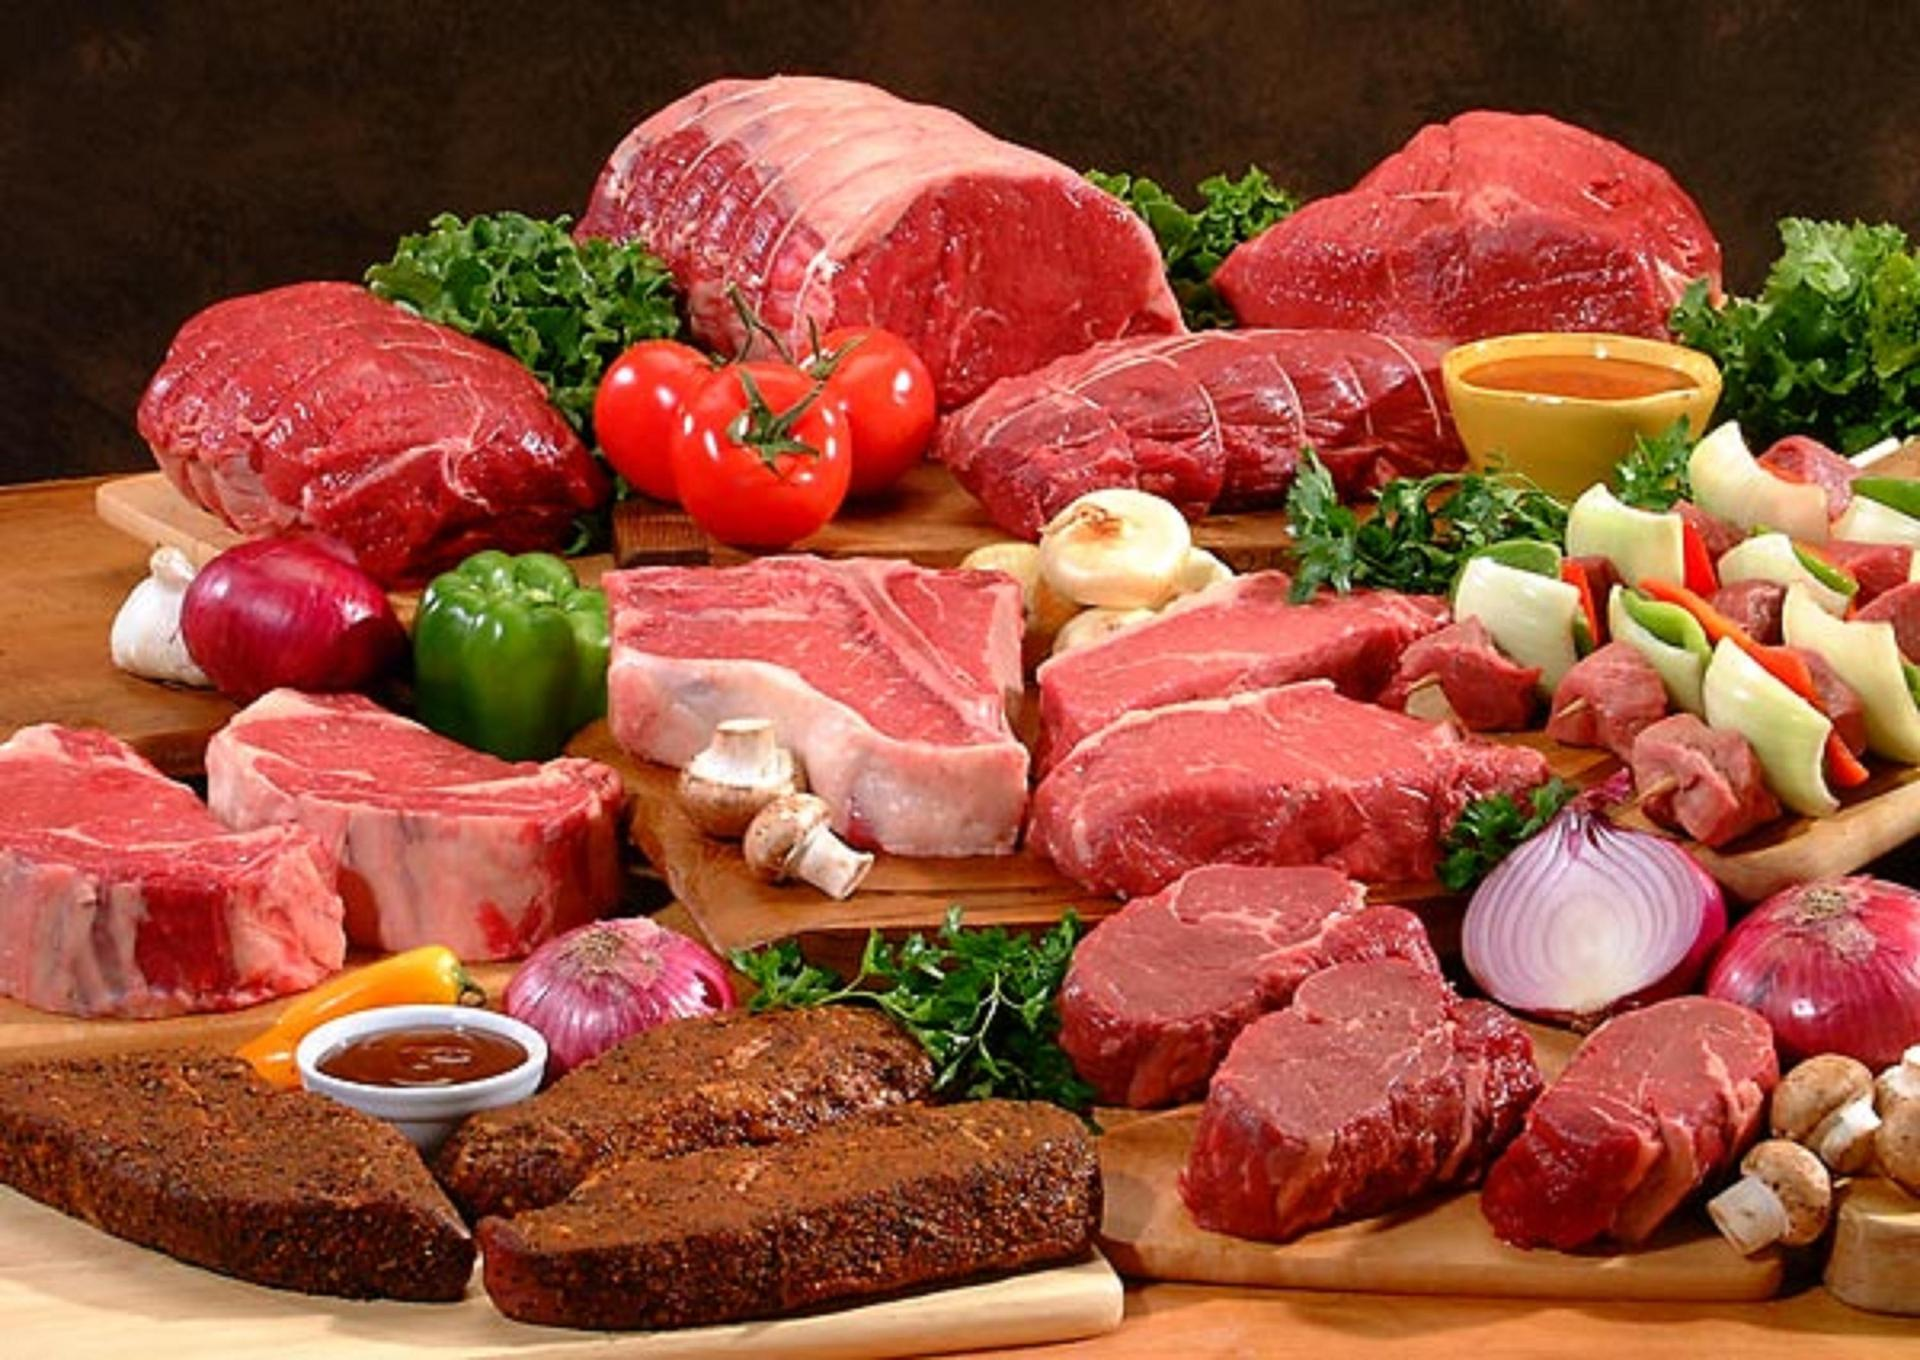 Check our Beef & Poultry Products